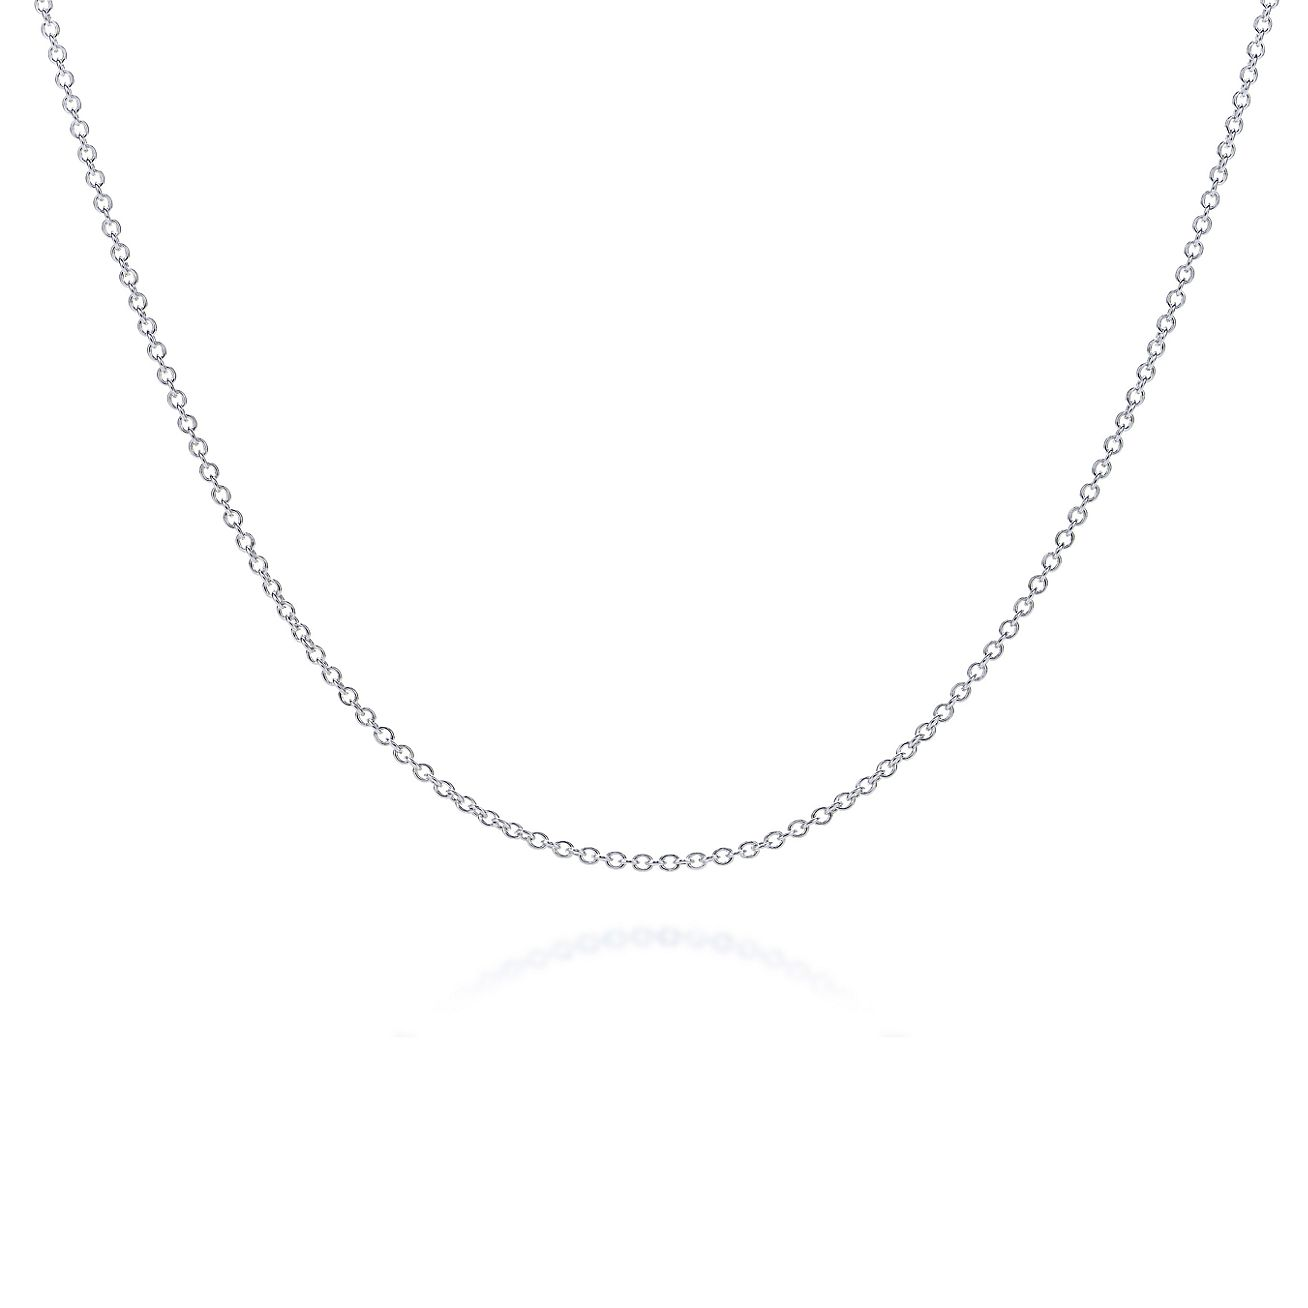 plain flat accessories stering chains snake silver product necklace store fashion plated new chain jewelry